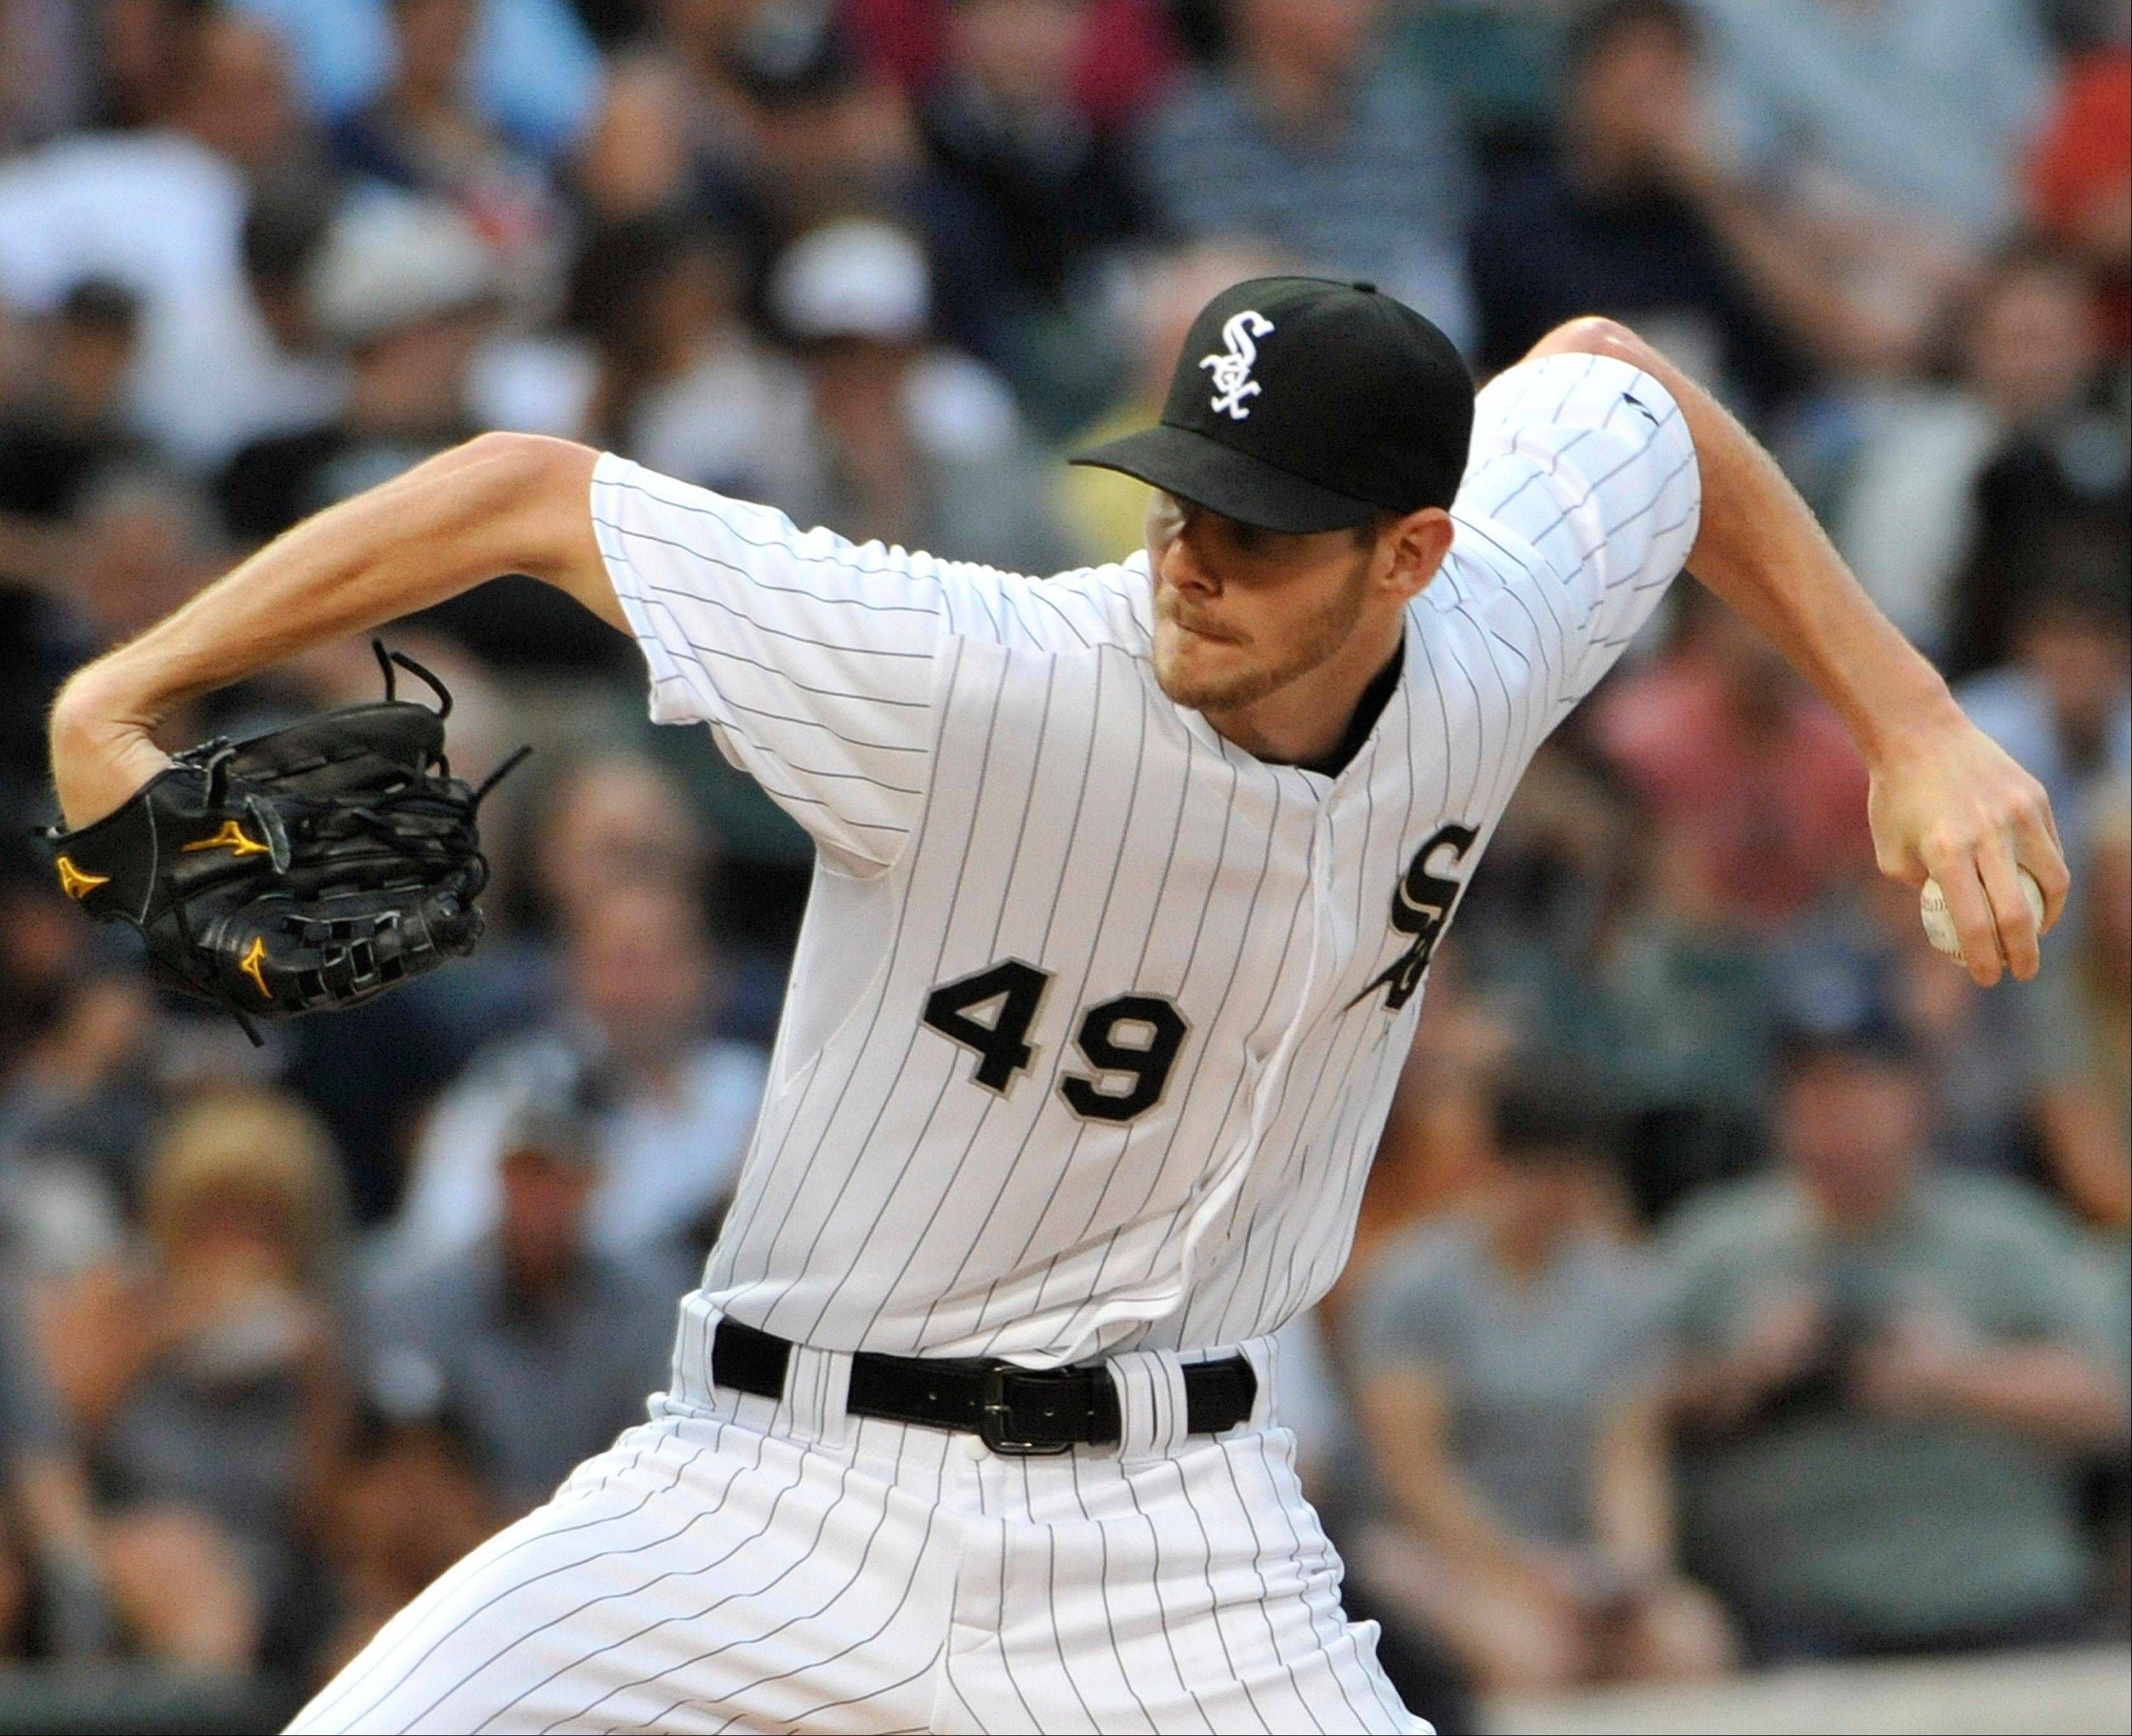 Chicago White Sox' Chris Sale pitches against the New York Yankees during the first inning of a baseball game, Tuesday, Aug. 6, 2013 in Chicago. (AP Photo/David Banks)